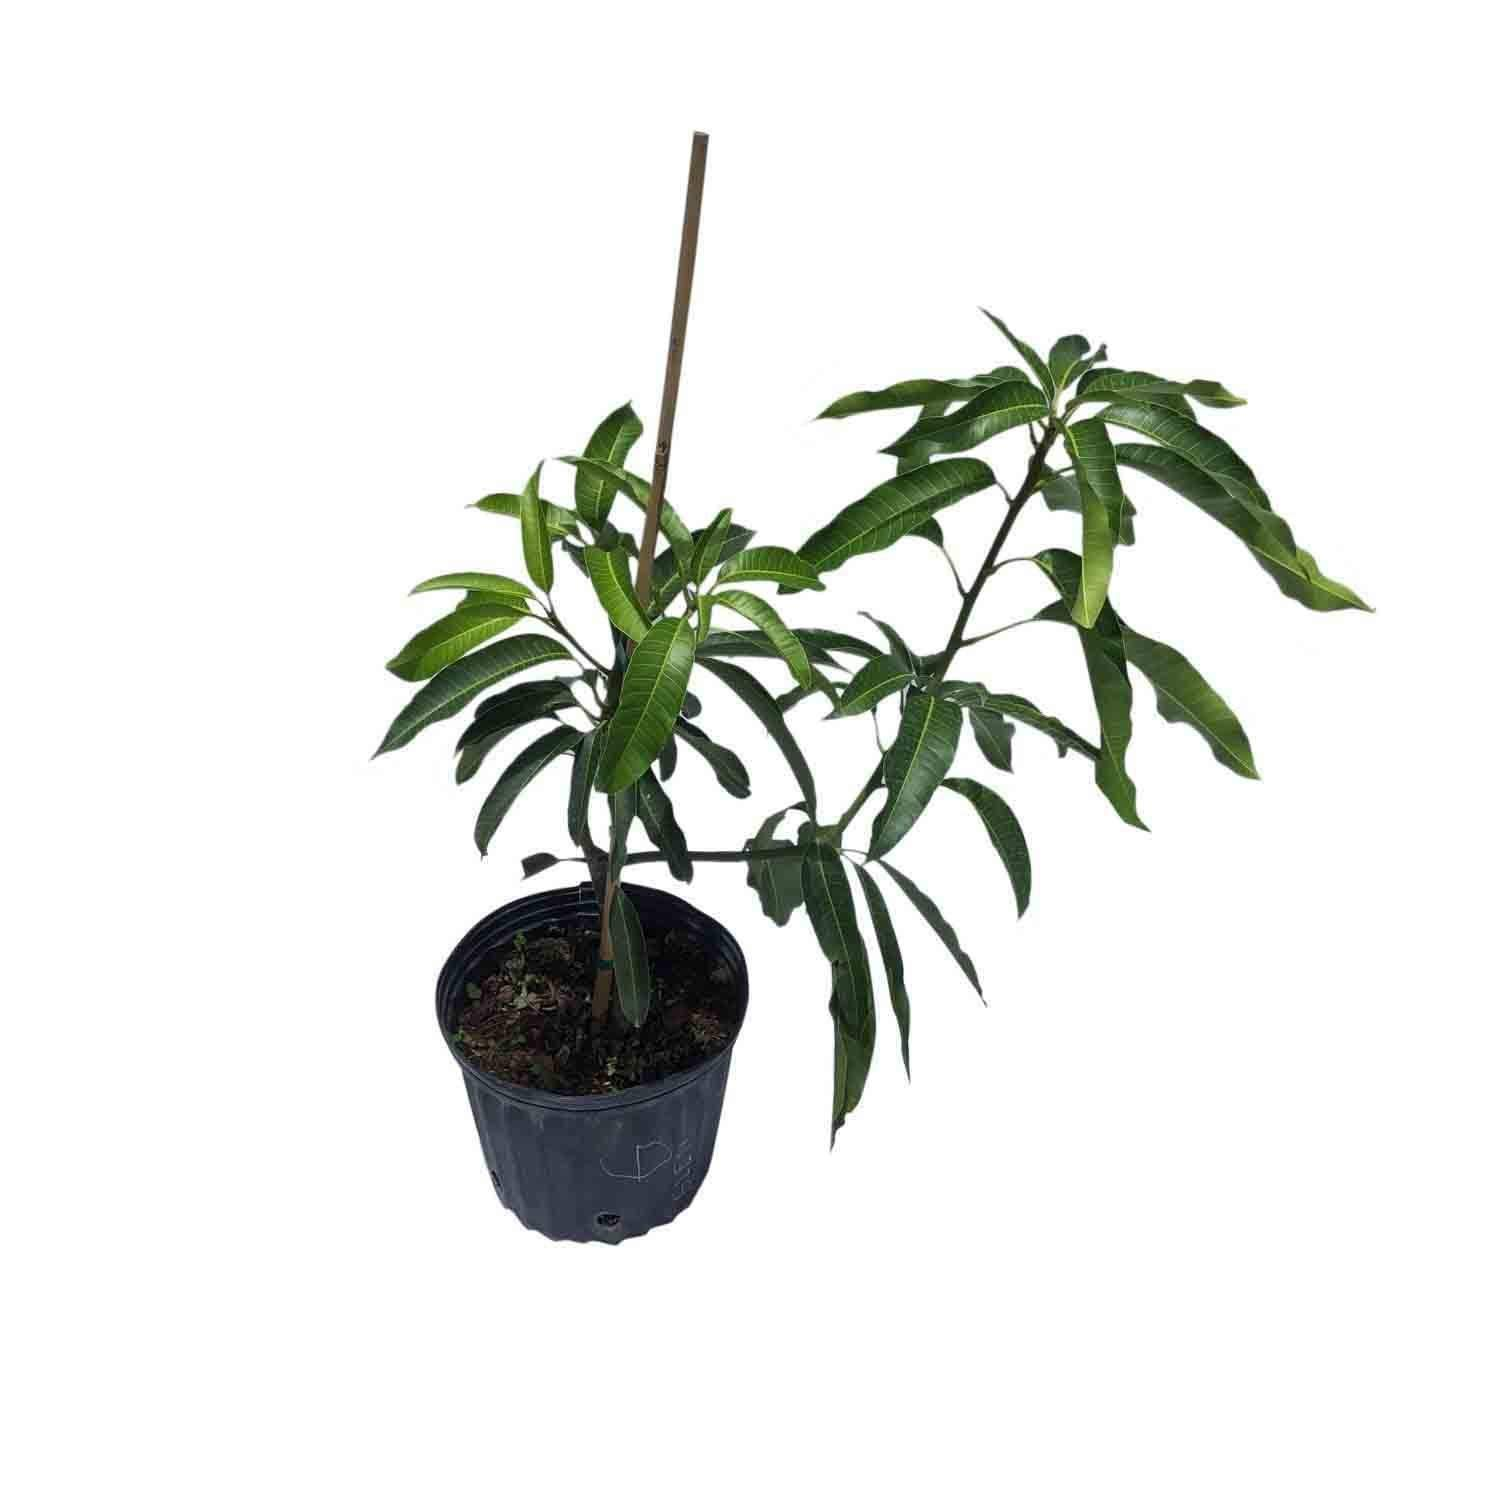 Glenn Mango Tree, Grafted, 3 Gal Container from Florida by Everglades Farm